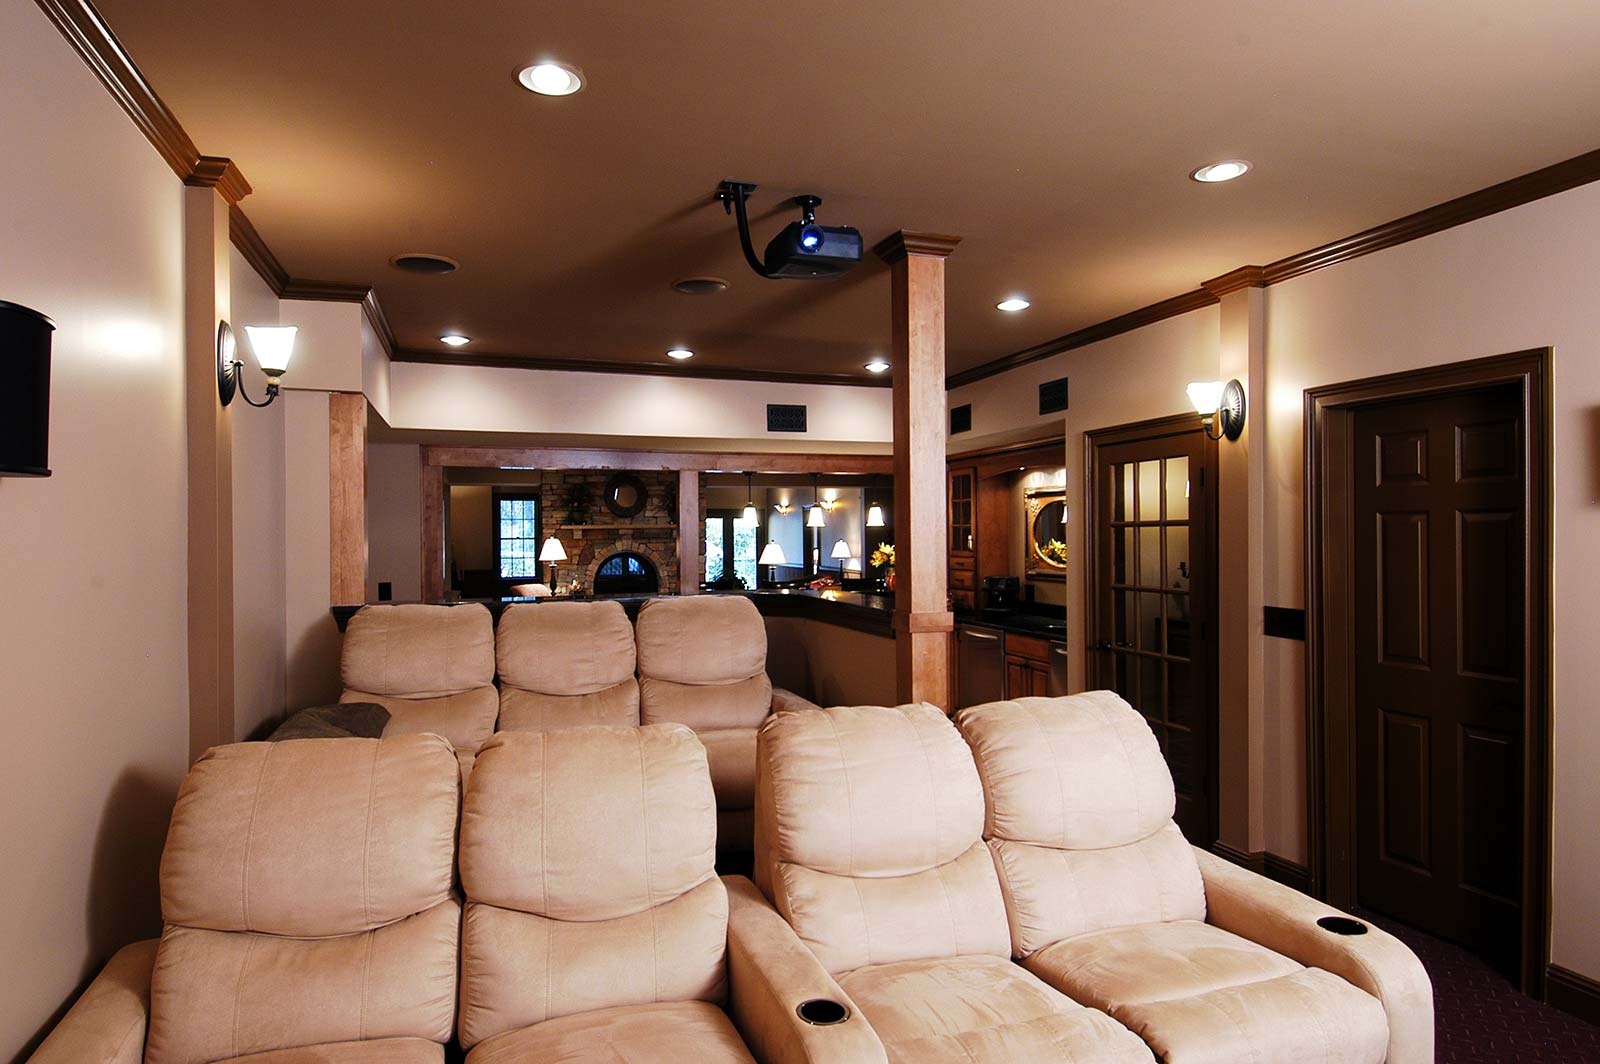 View of home theater seating